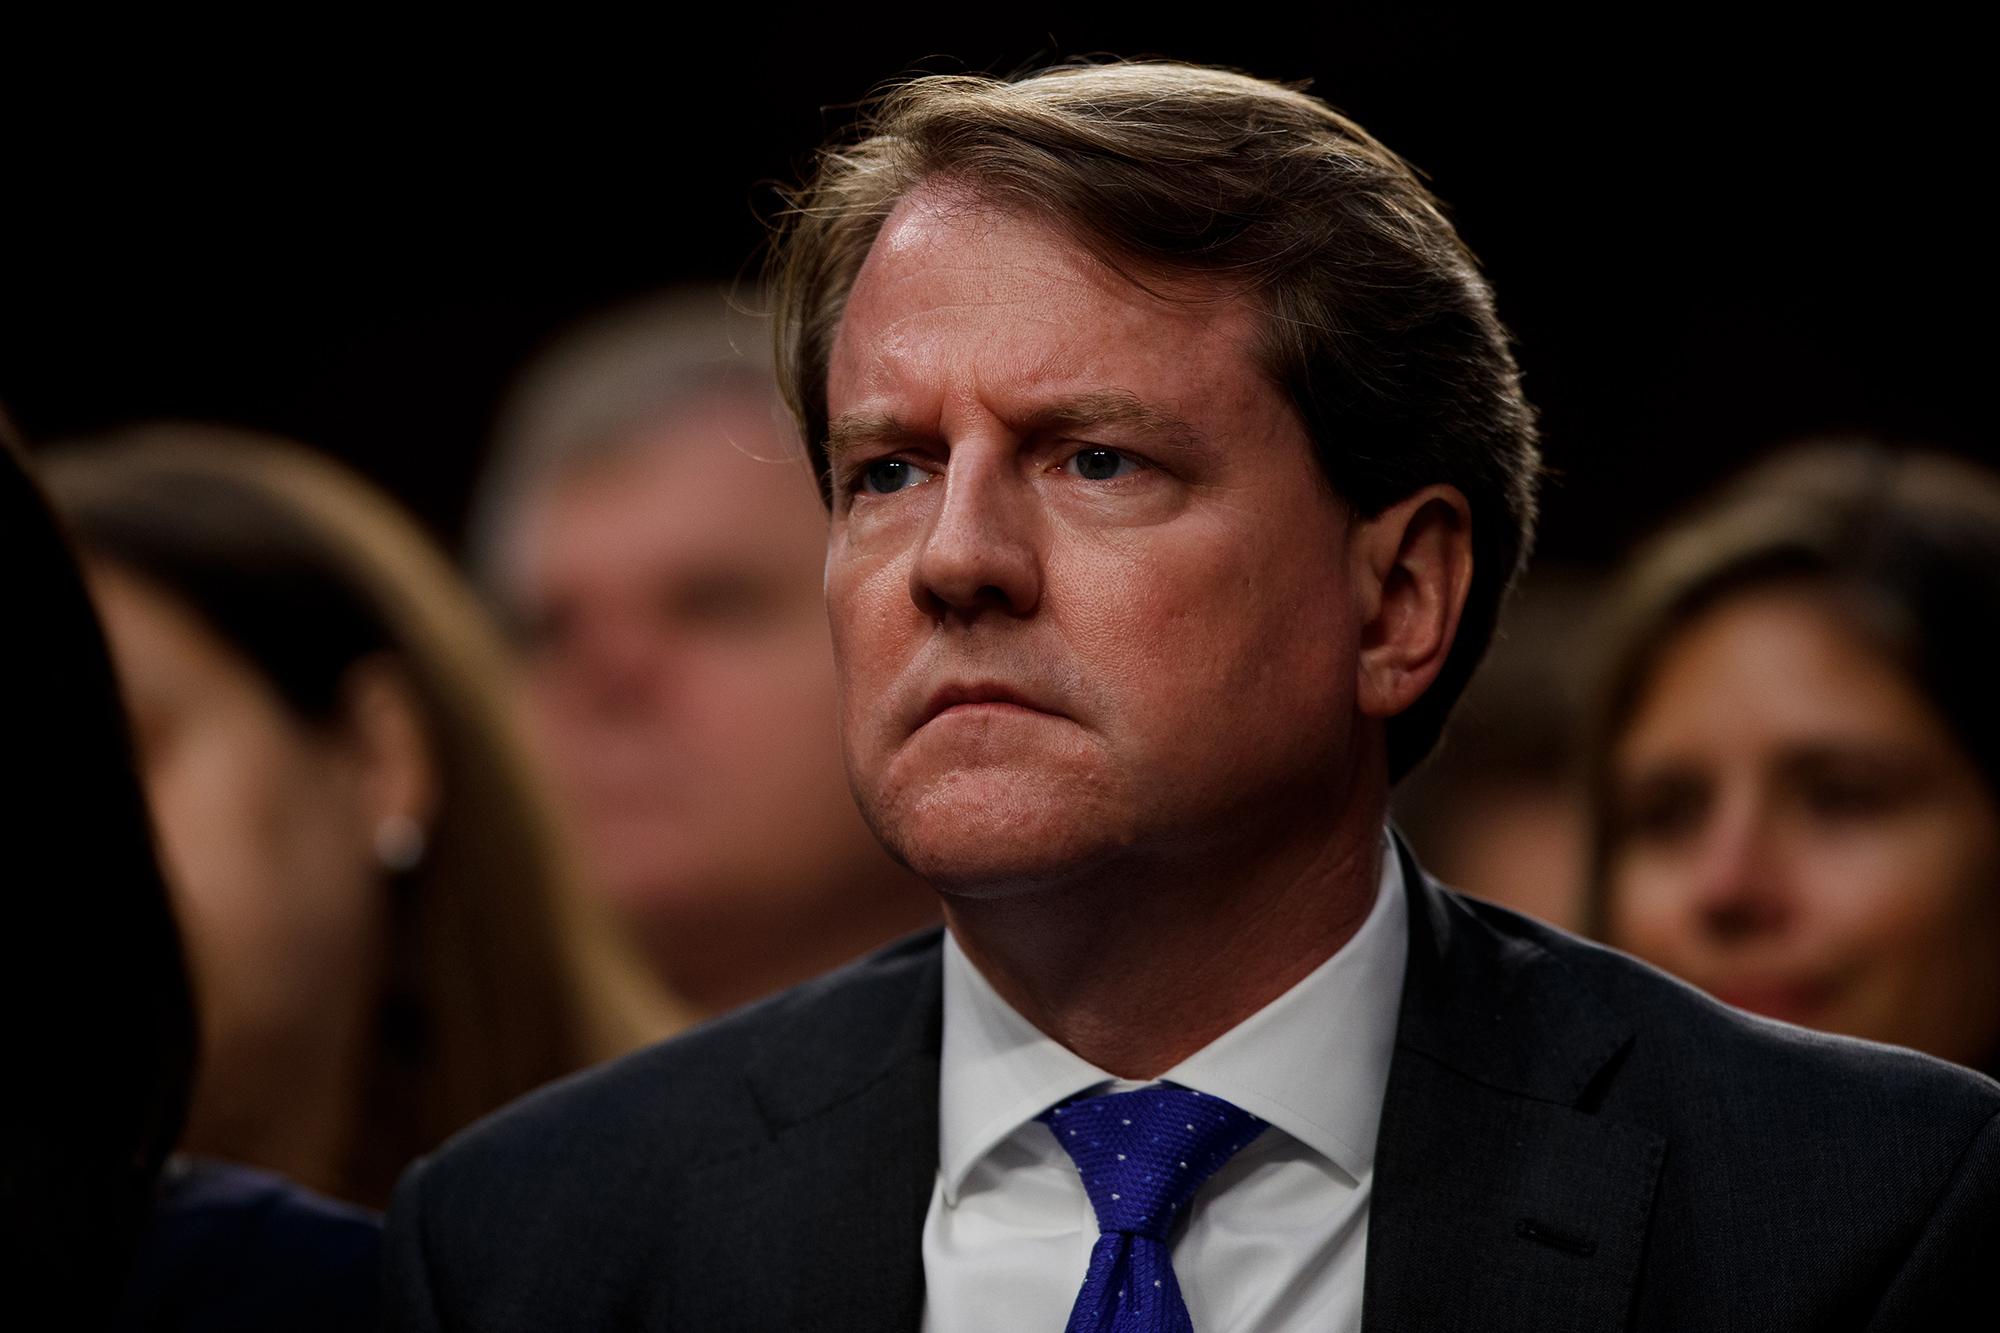 Former White House counsel Don McGahn attends the confirmation hearing for Supreme Court Justice Brett Kavanaughon Sept. 4, 2018.